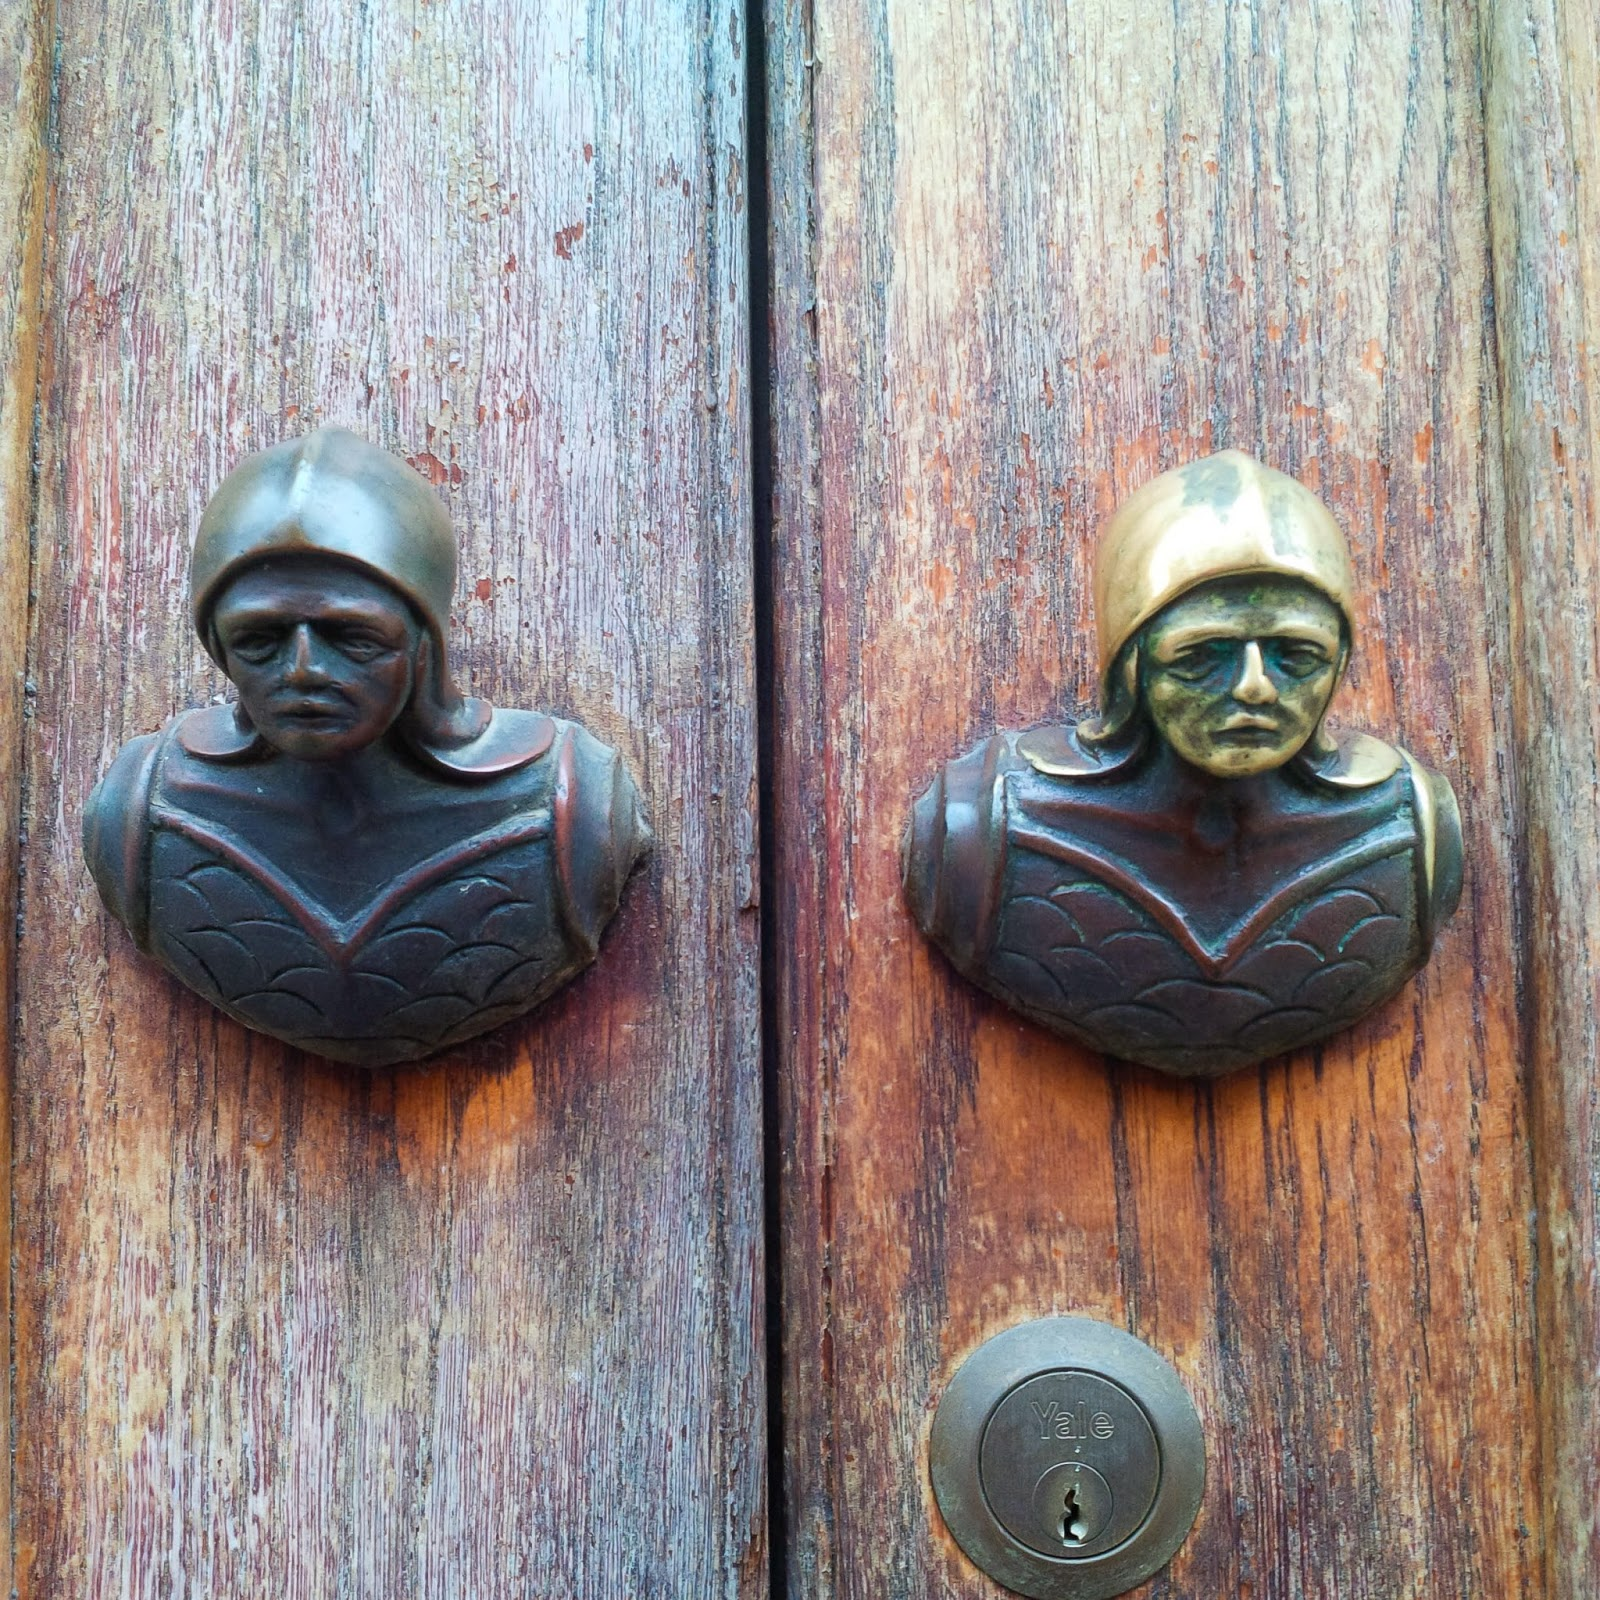 Soldiers' heads door handles as seen in Vicenza, Italy